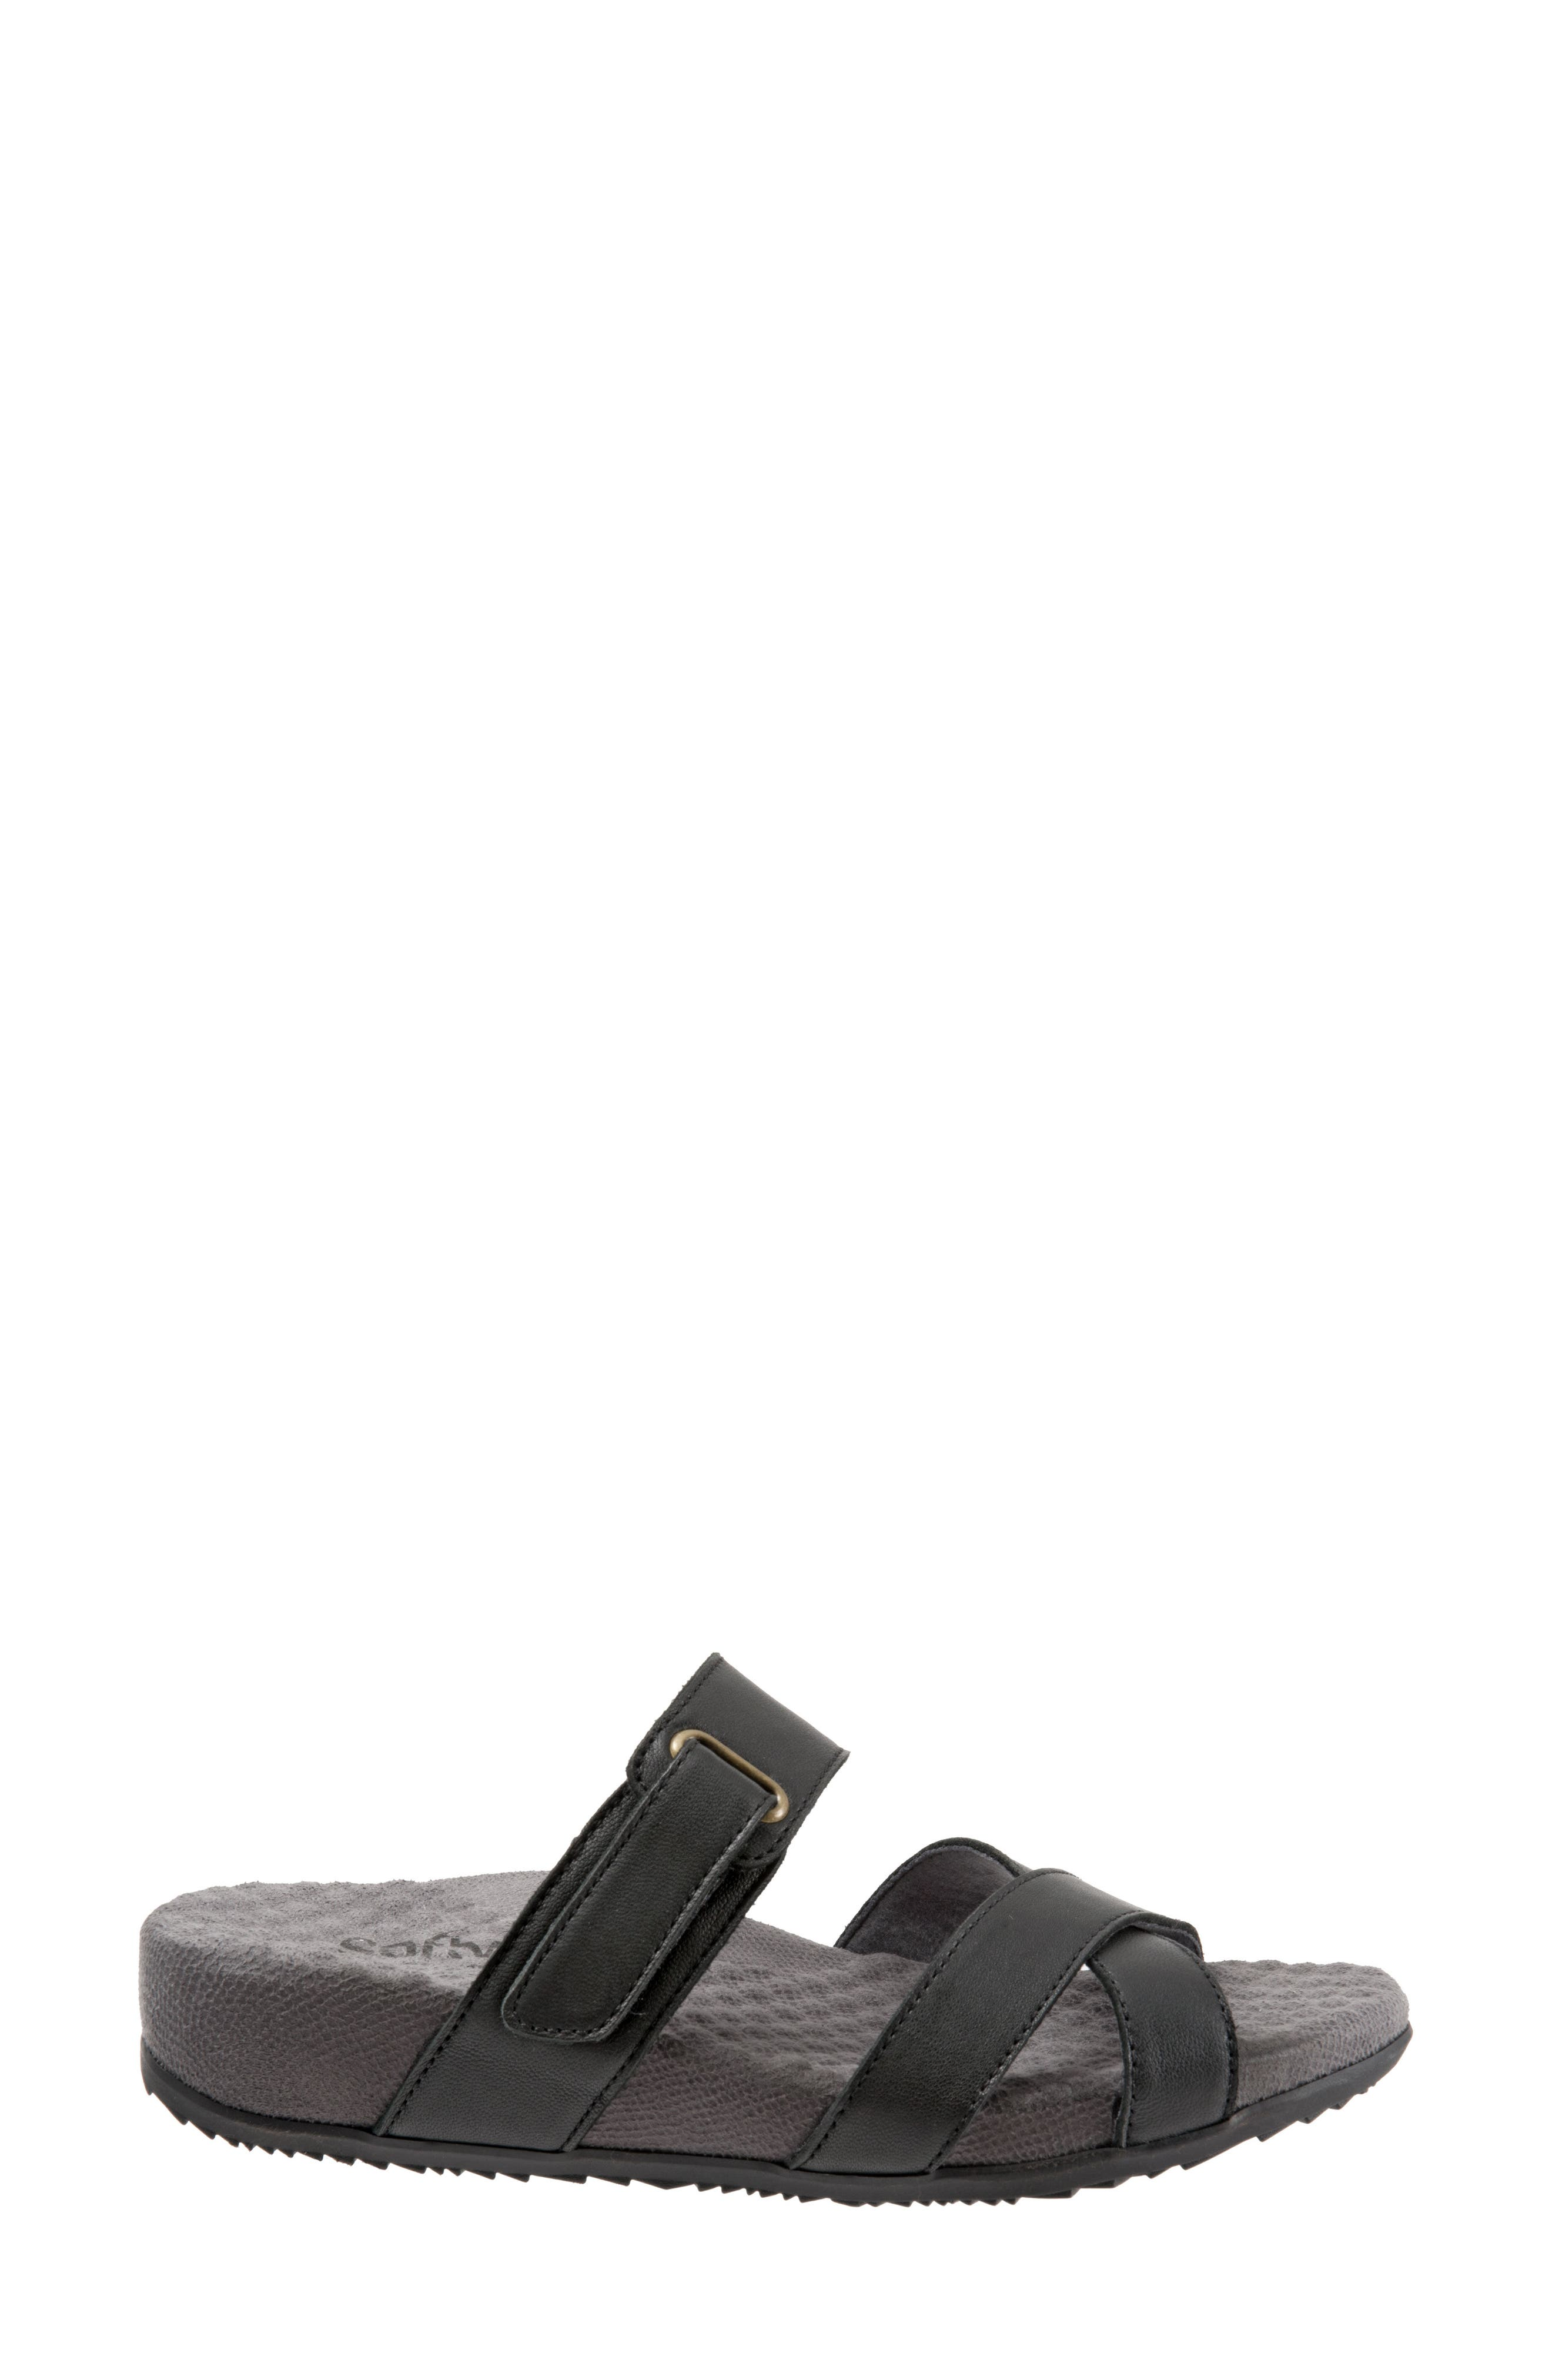 SOFTWALK<SUP>®</SUP>, Brimley Sandal, Alternate thumbnail 3, color, BLACK LEATHER